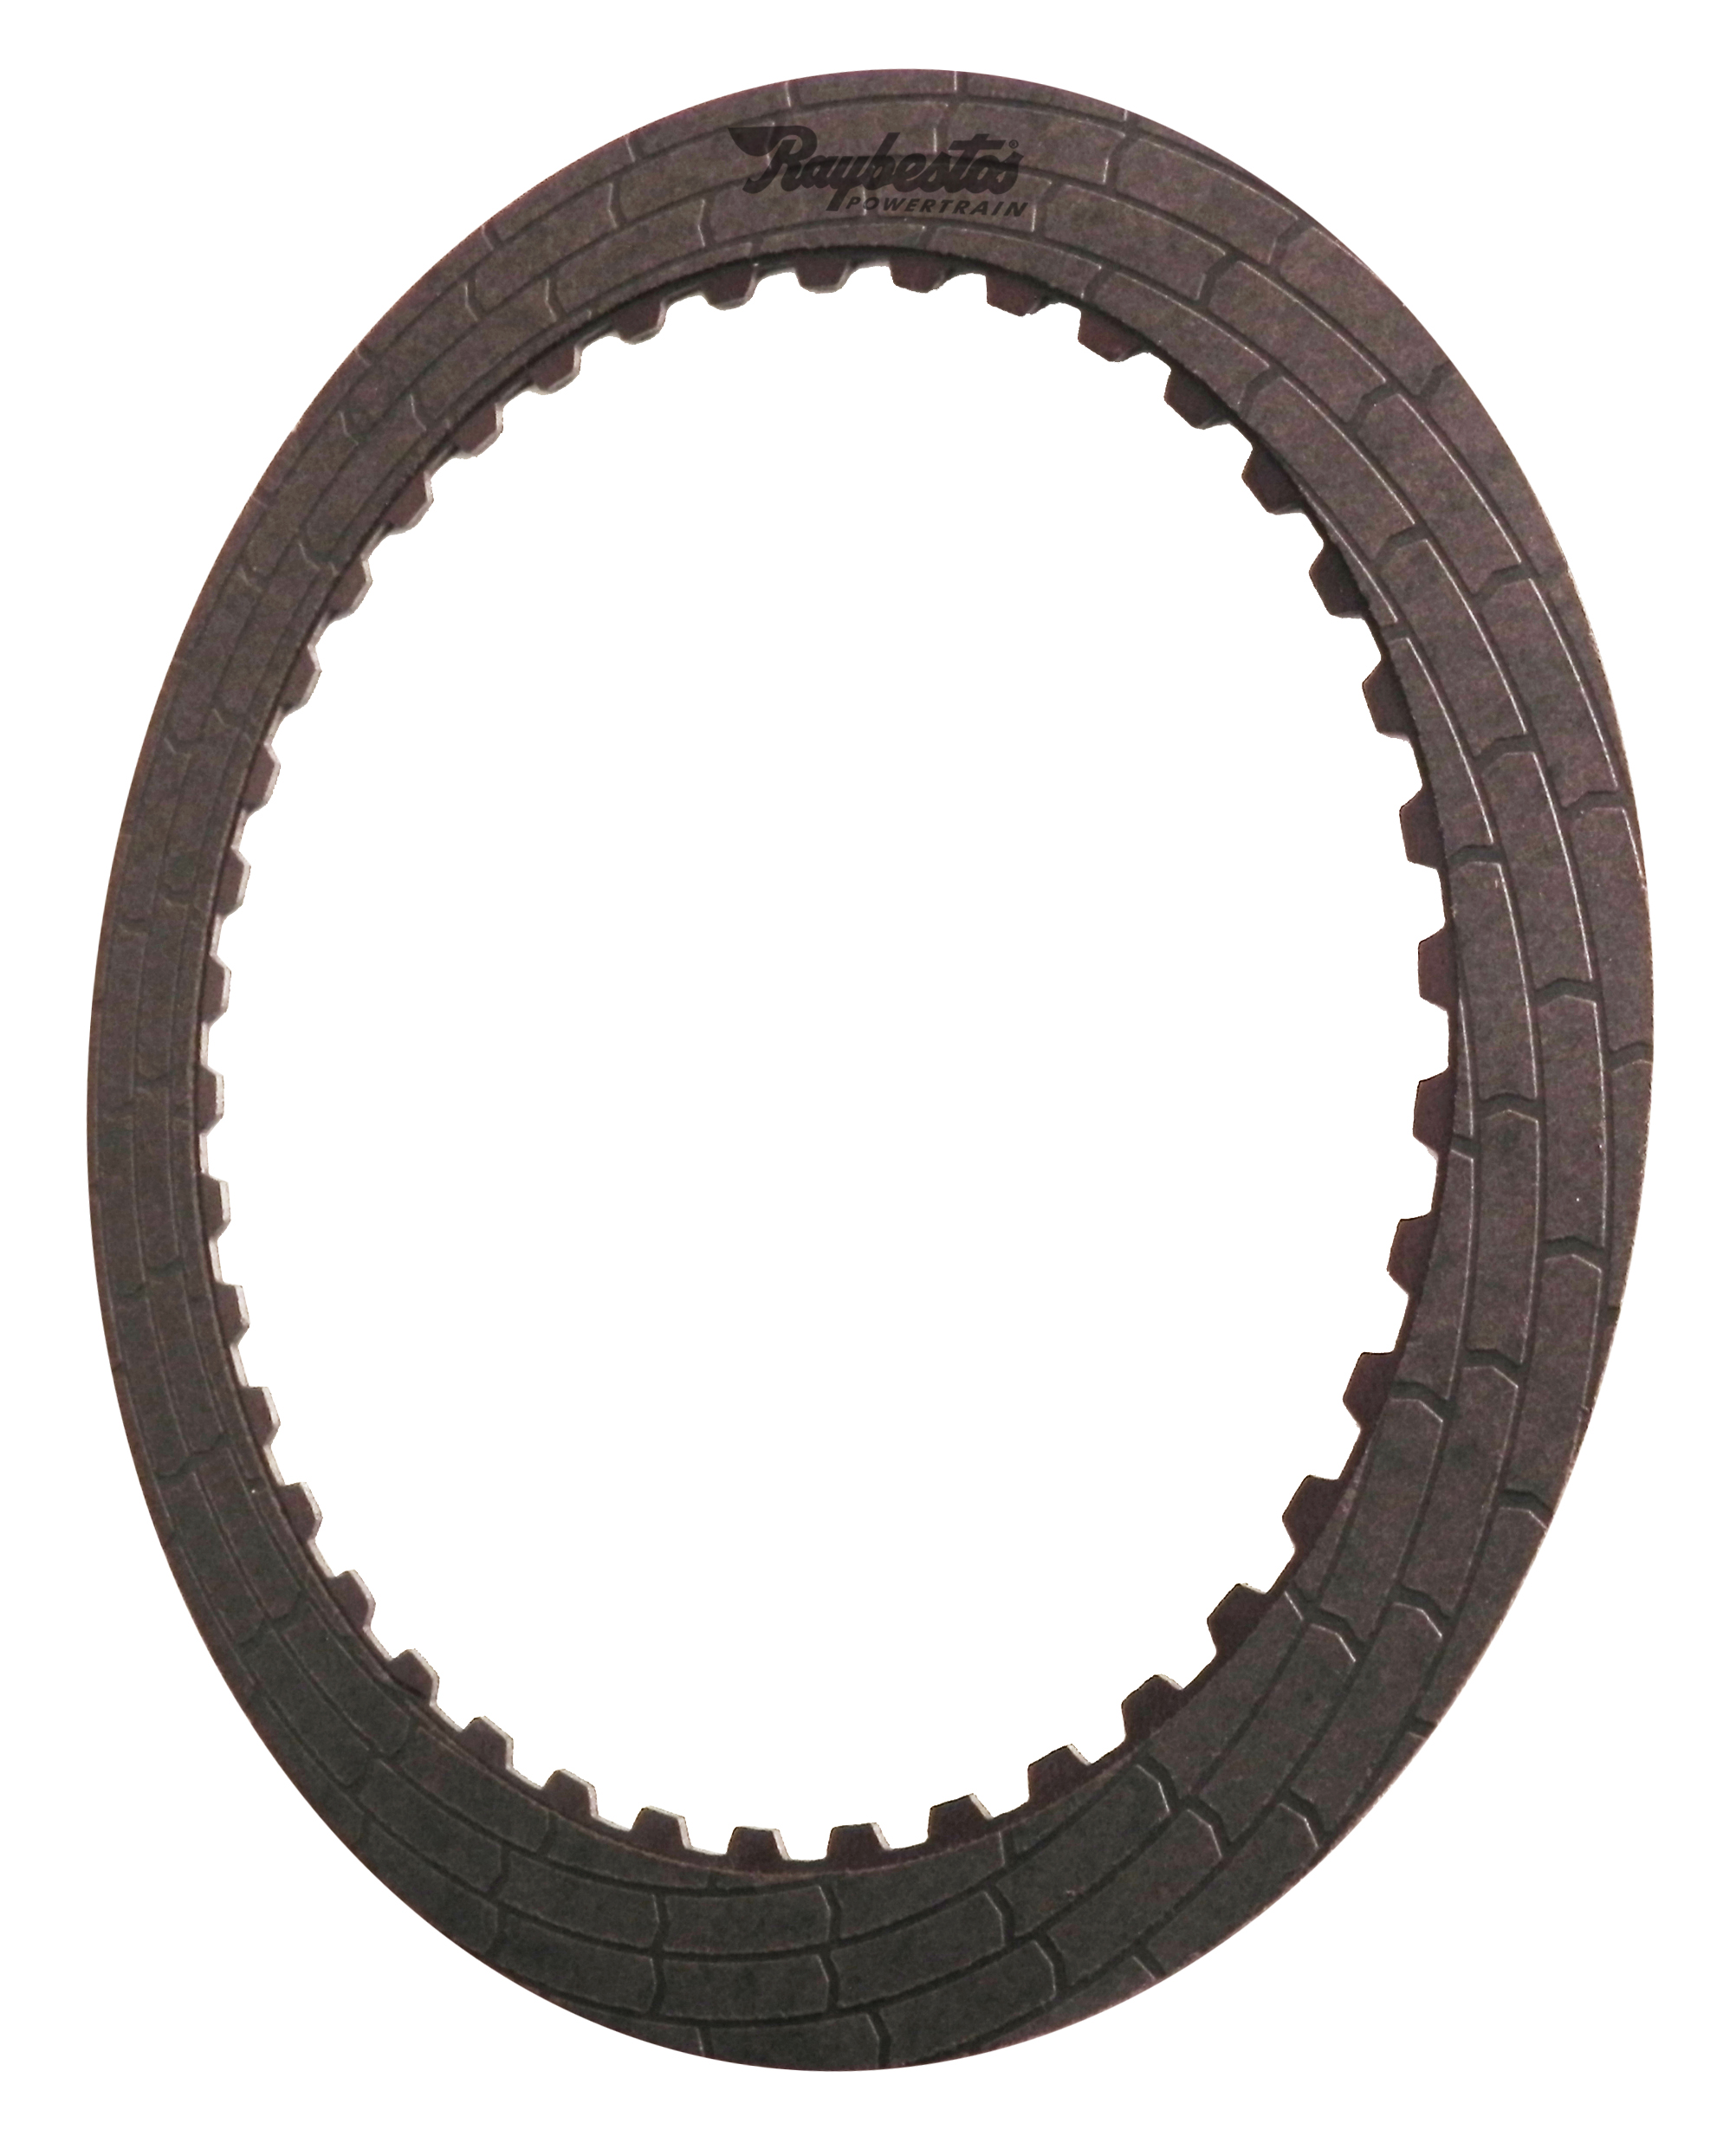 RH563520 | 2003-ON Friction Clutch Plate (HT) Hybrid Technology #3 Brake (2nd) Proprietary High Energy (HT)